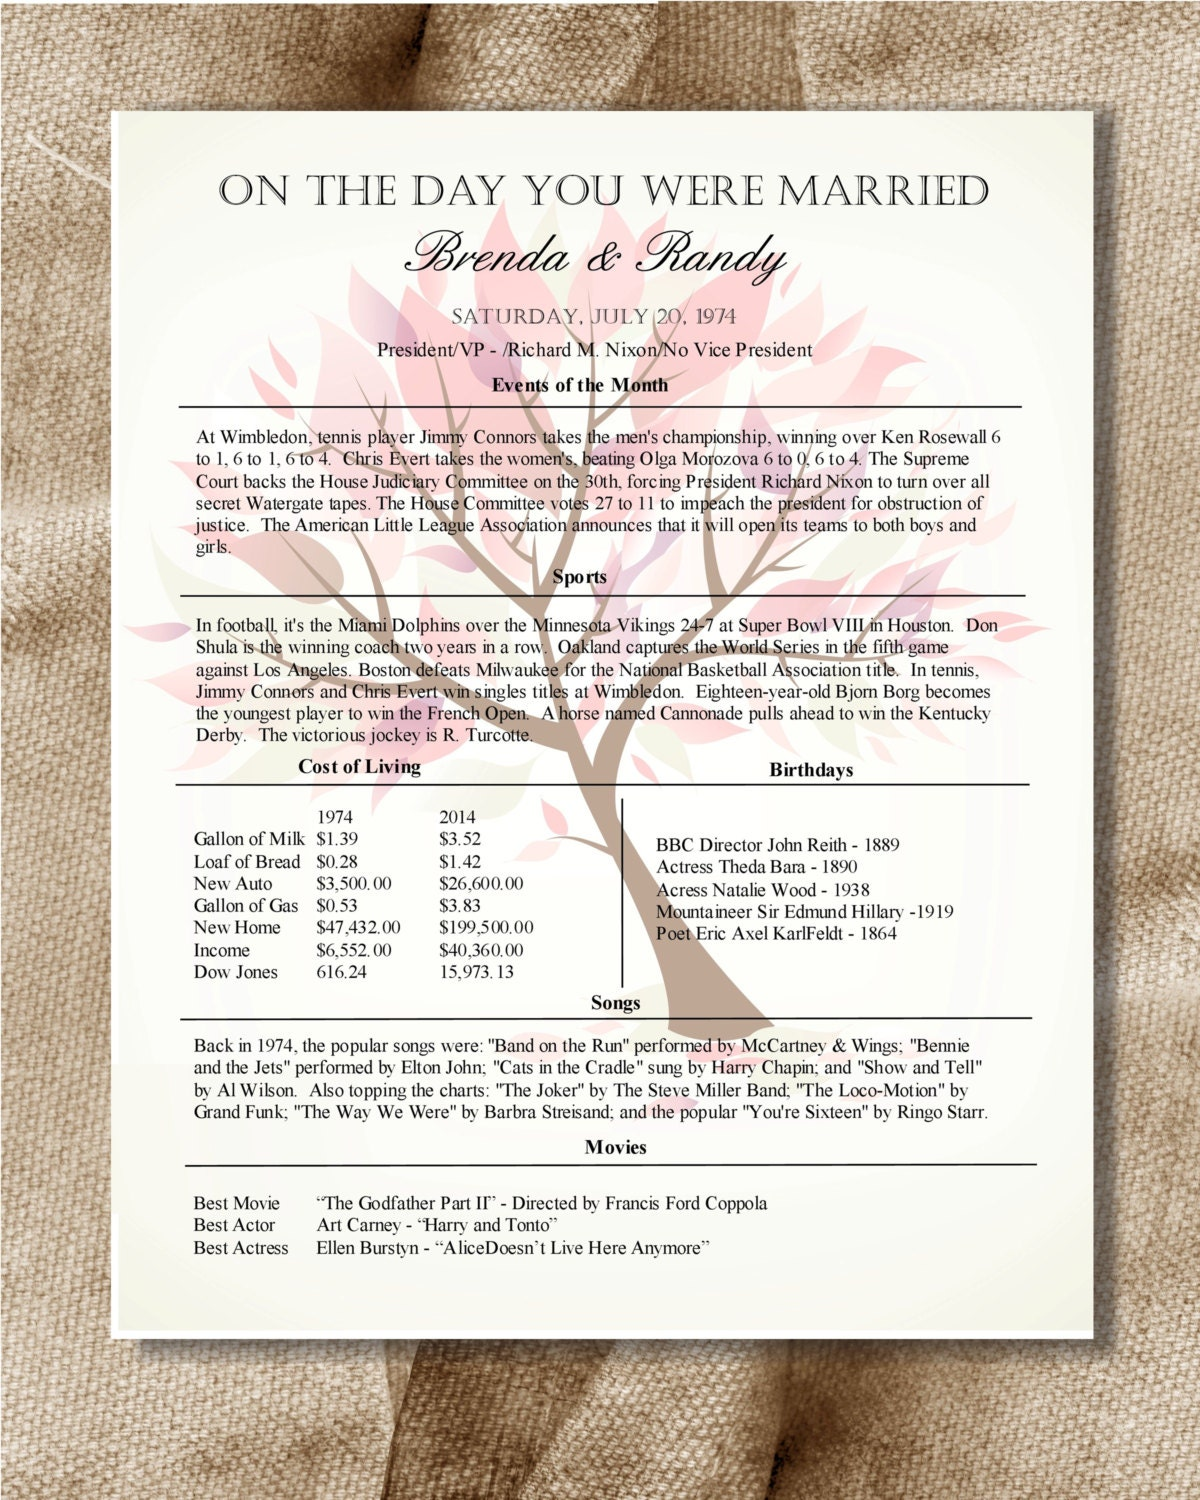 Wedding Gifts Years Married : 35th Wedding Anniversary Gift 35 Years of Marriage Day You